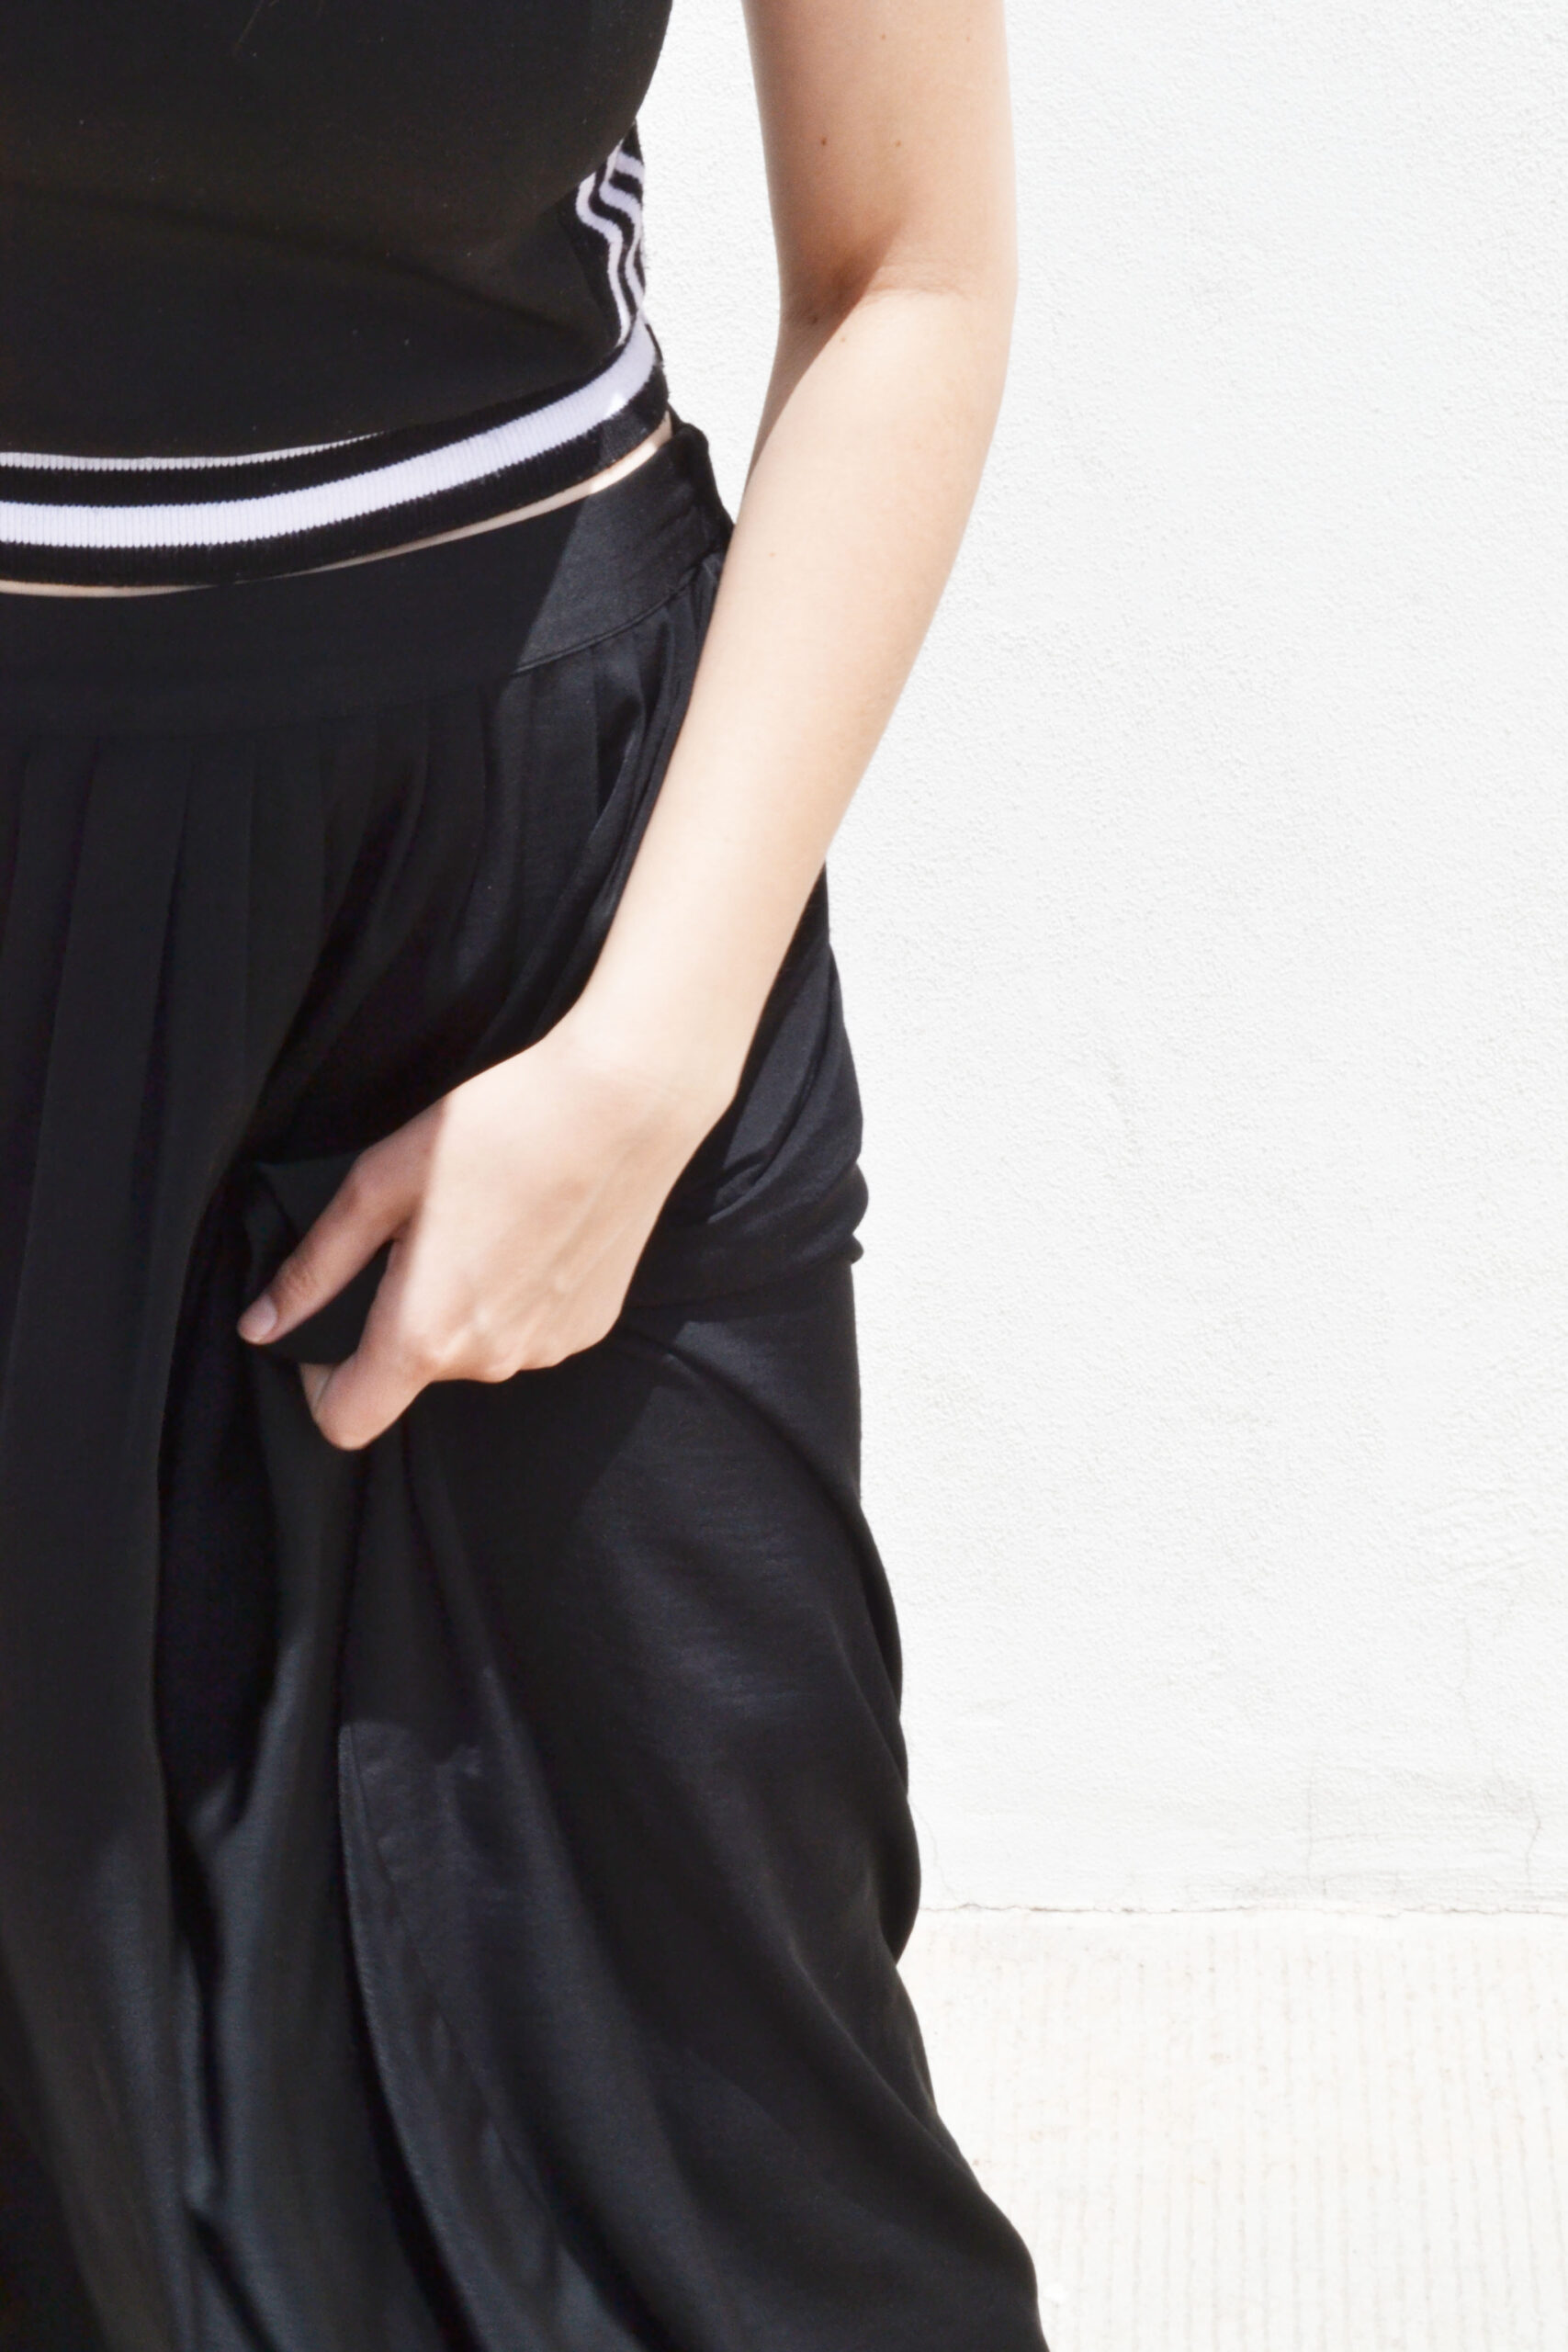 daniela soriano, maxi skirt, total black outfit, minimal fashion, max azria, bcbg, details, outfit details